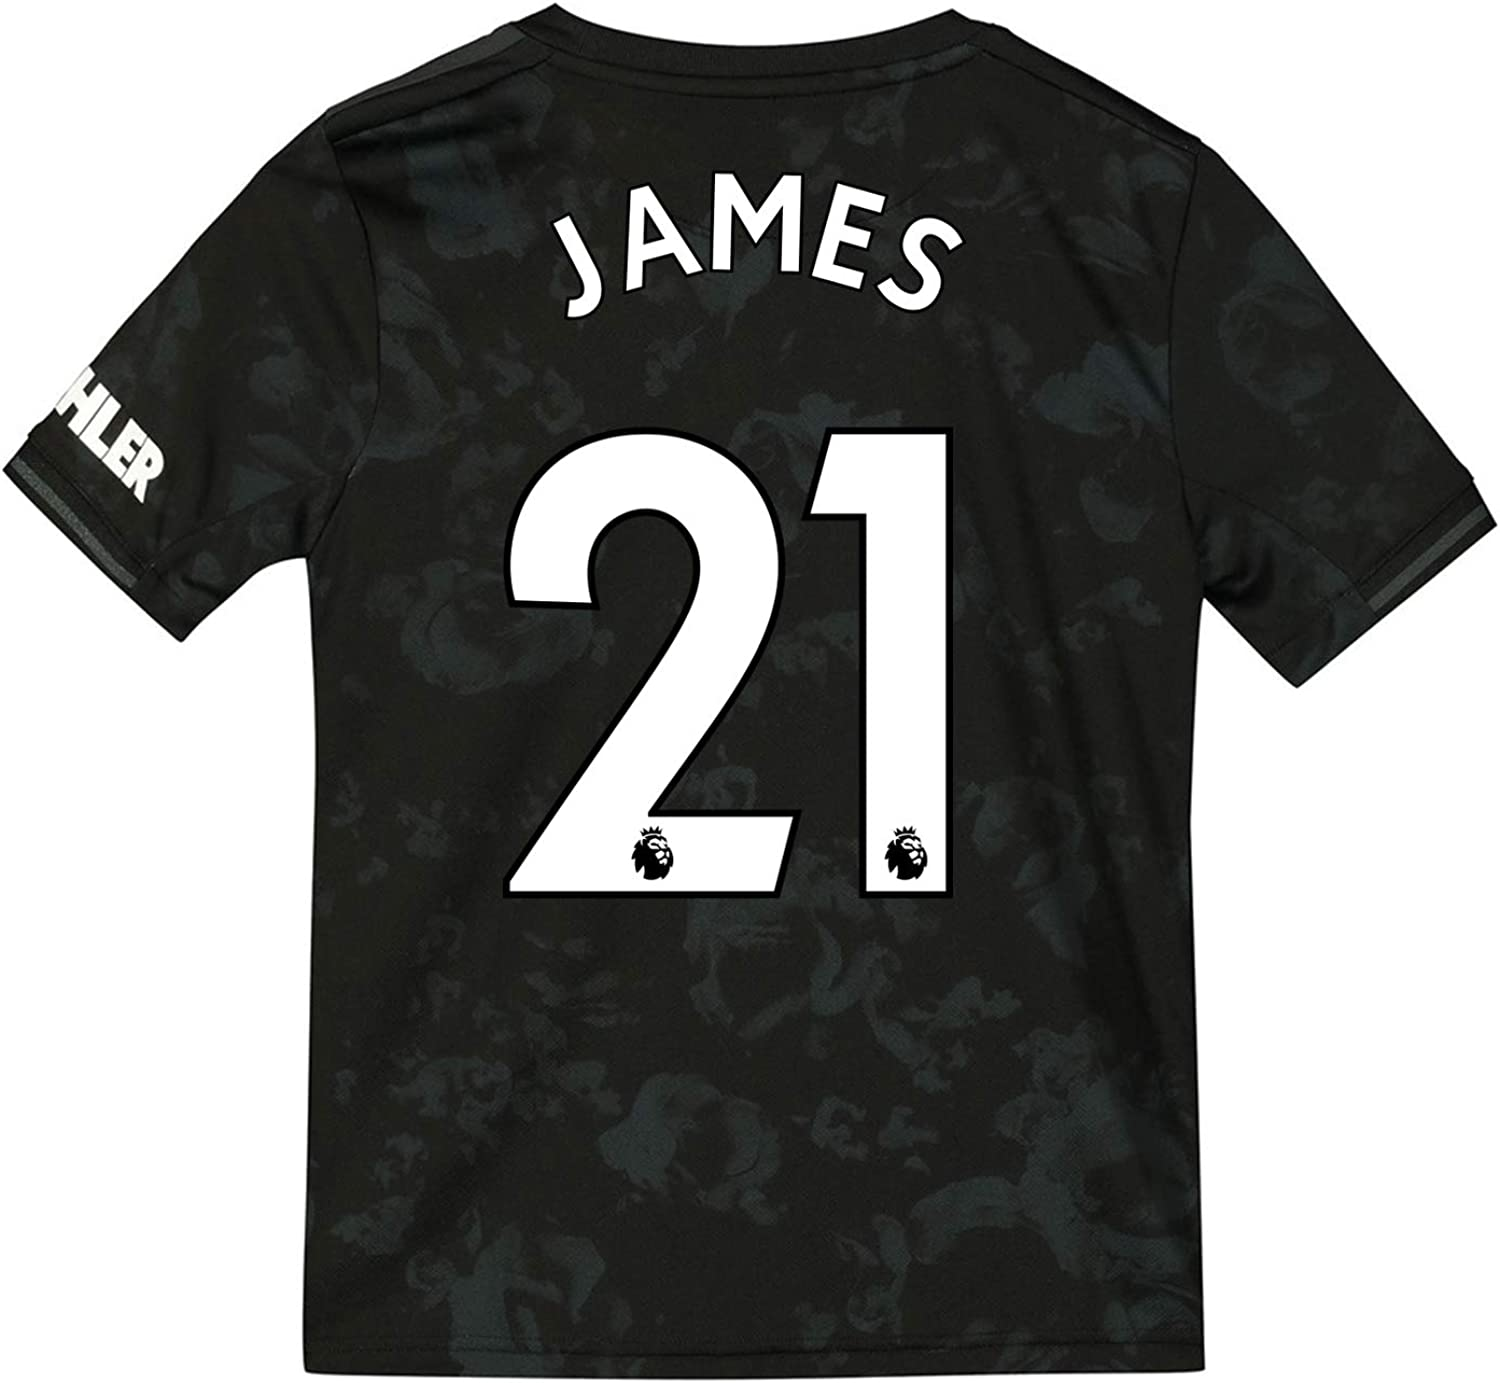 manchester united fc official gift boys james 21 third kit shirt 7 8 years amazon co uk clothing manchester united fc official football gift boys third kit shirt 2019 20